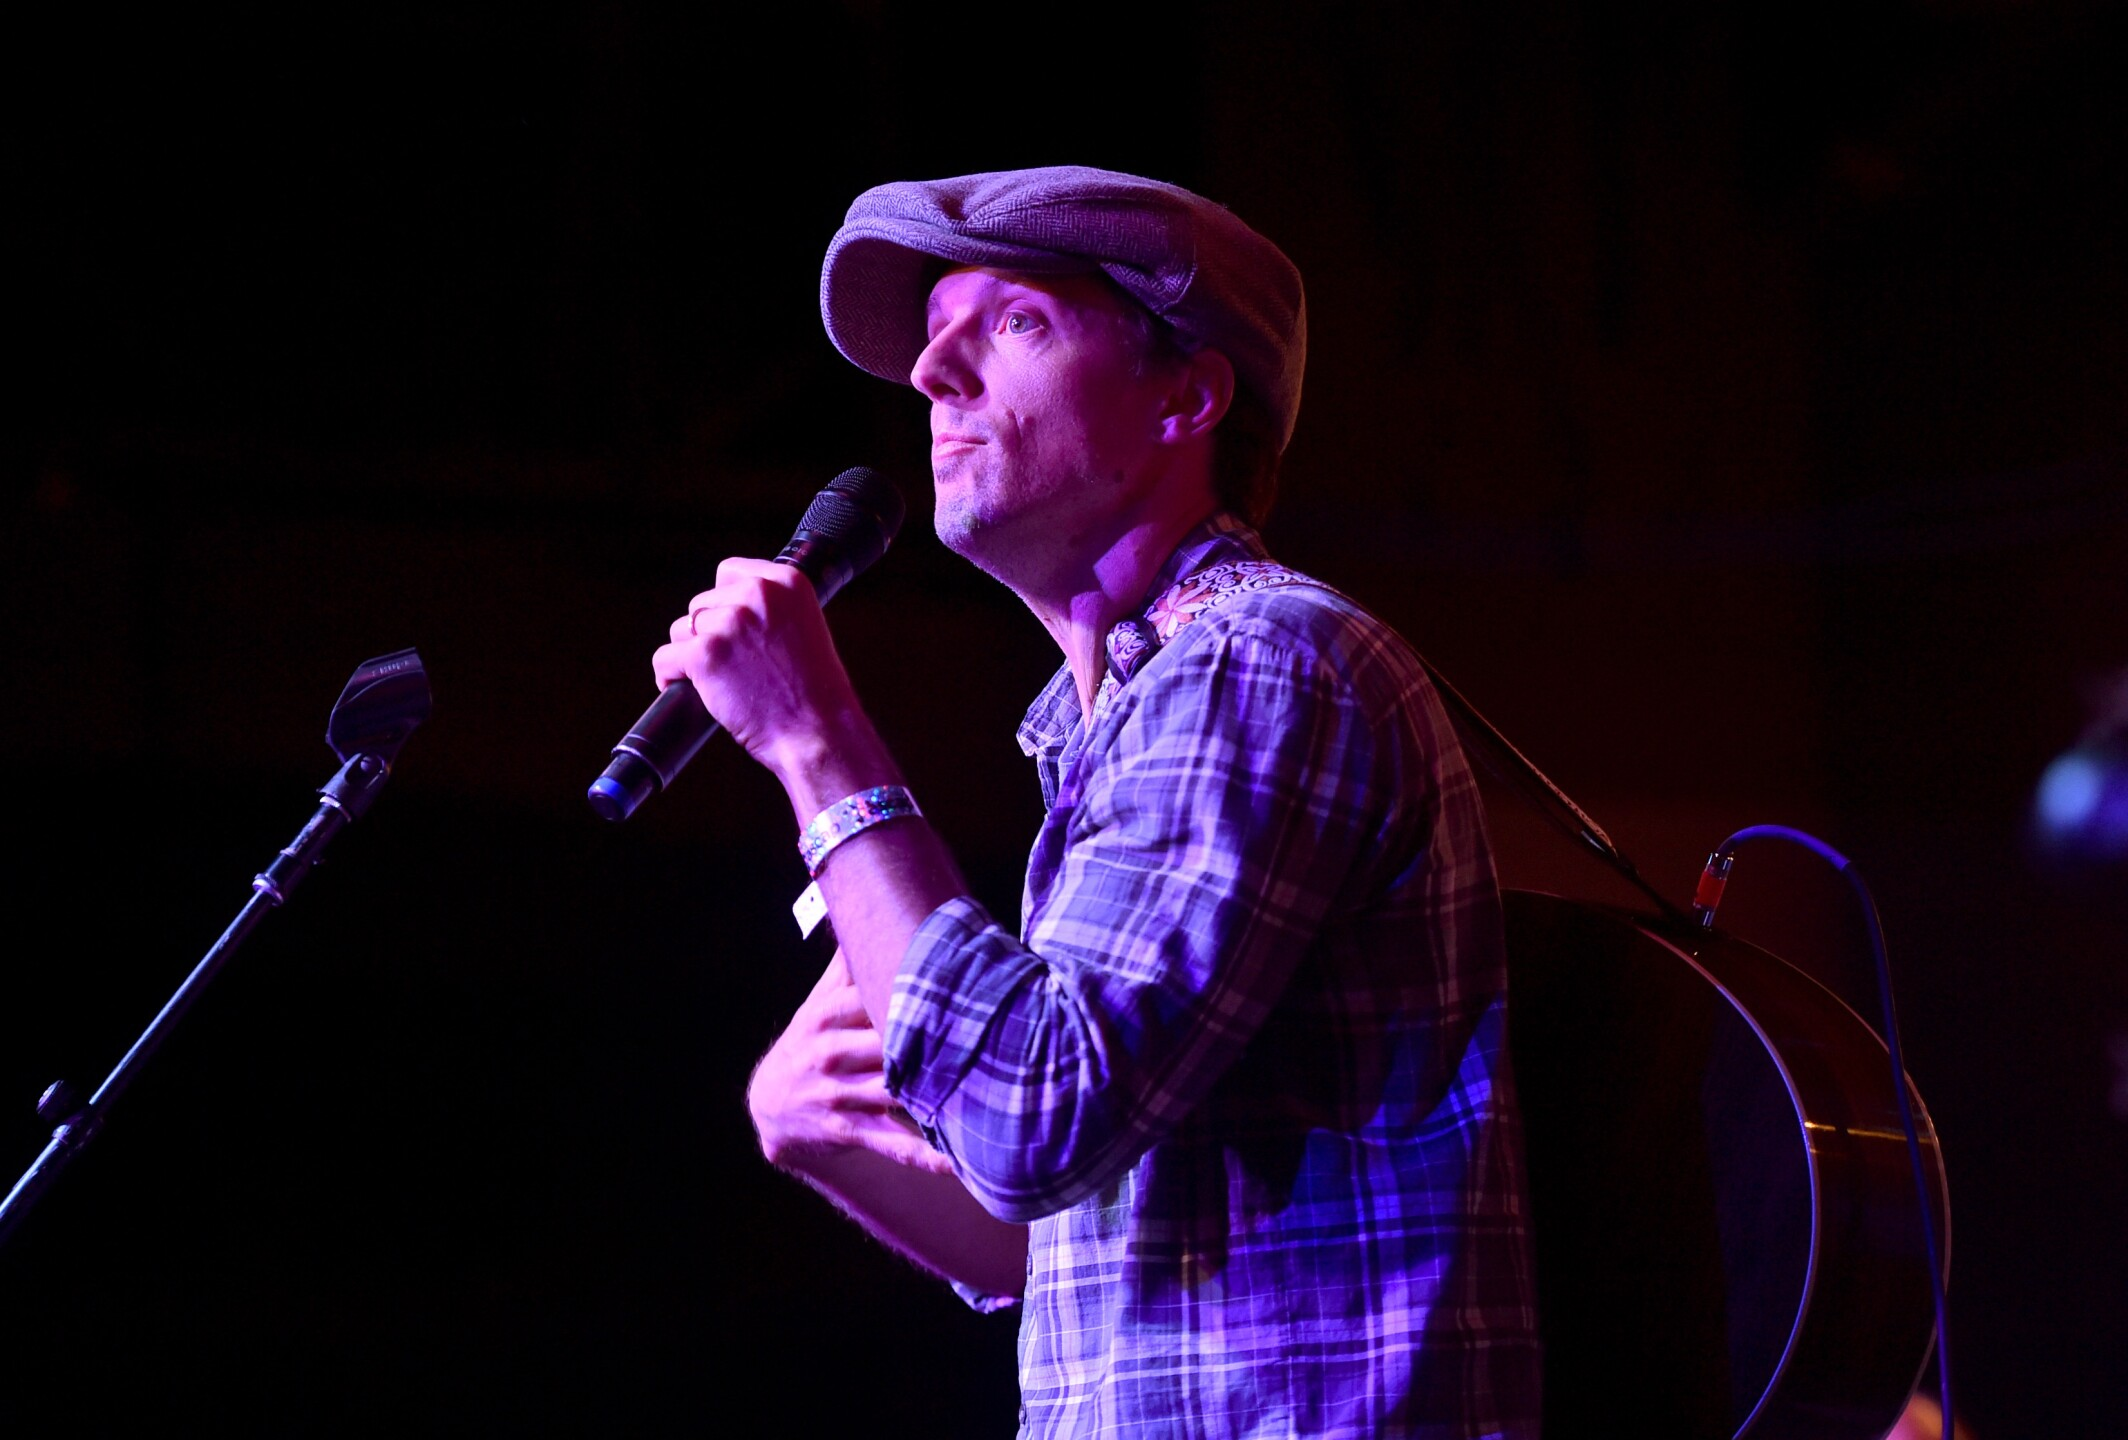 Jason Mraz will perform July 7 at Summerfest